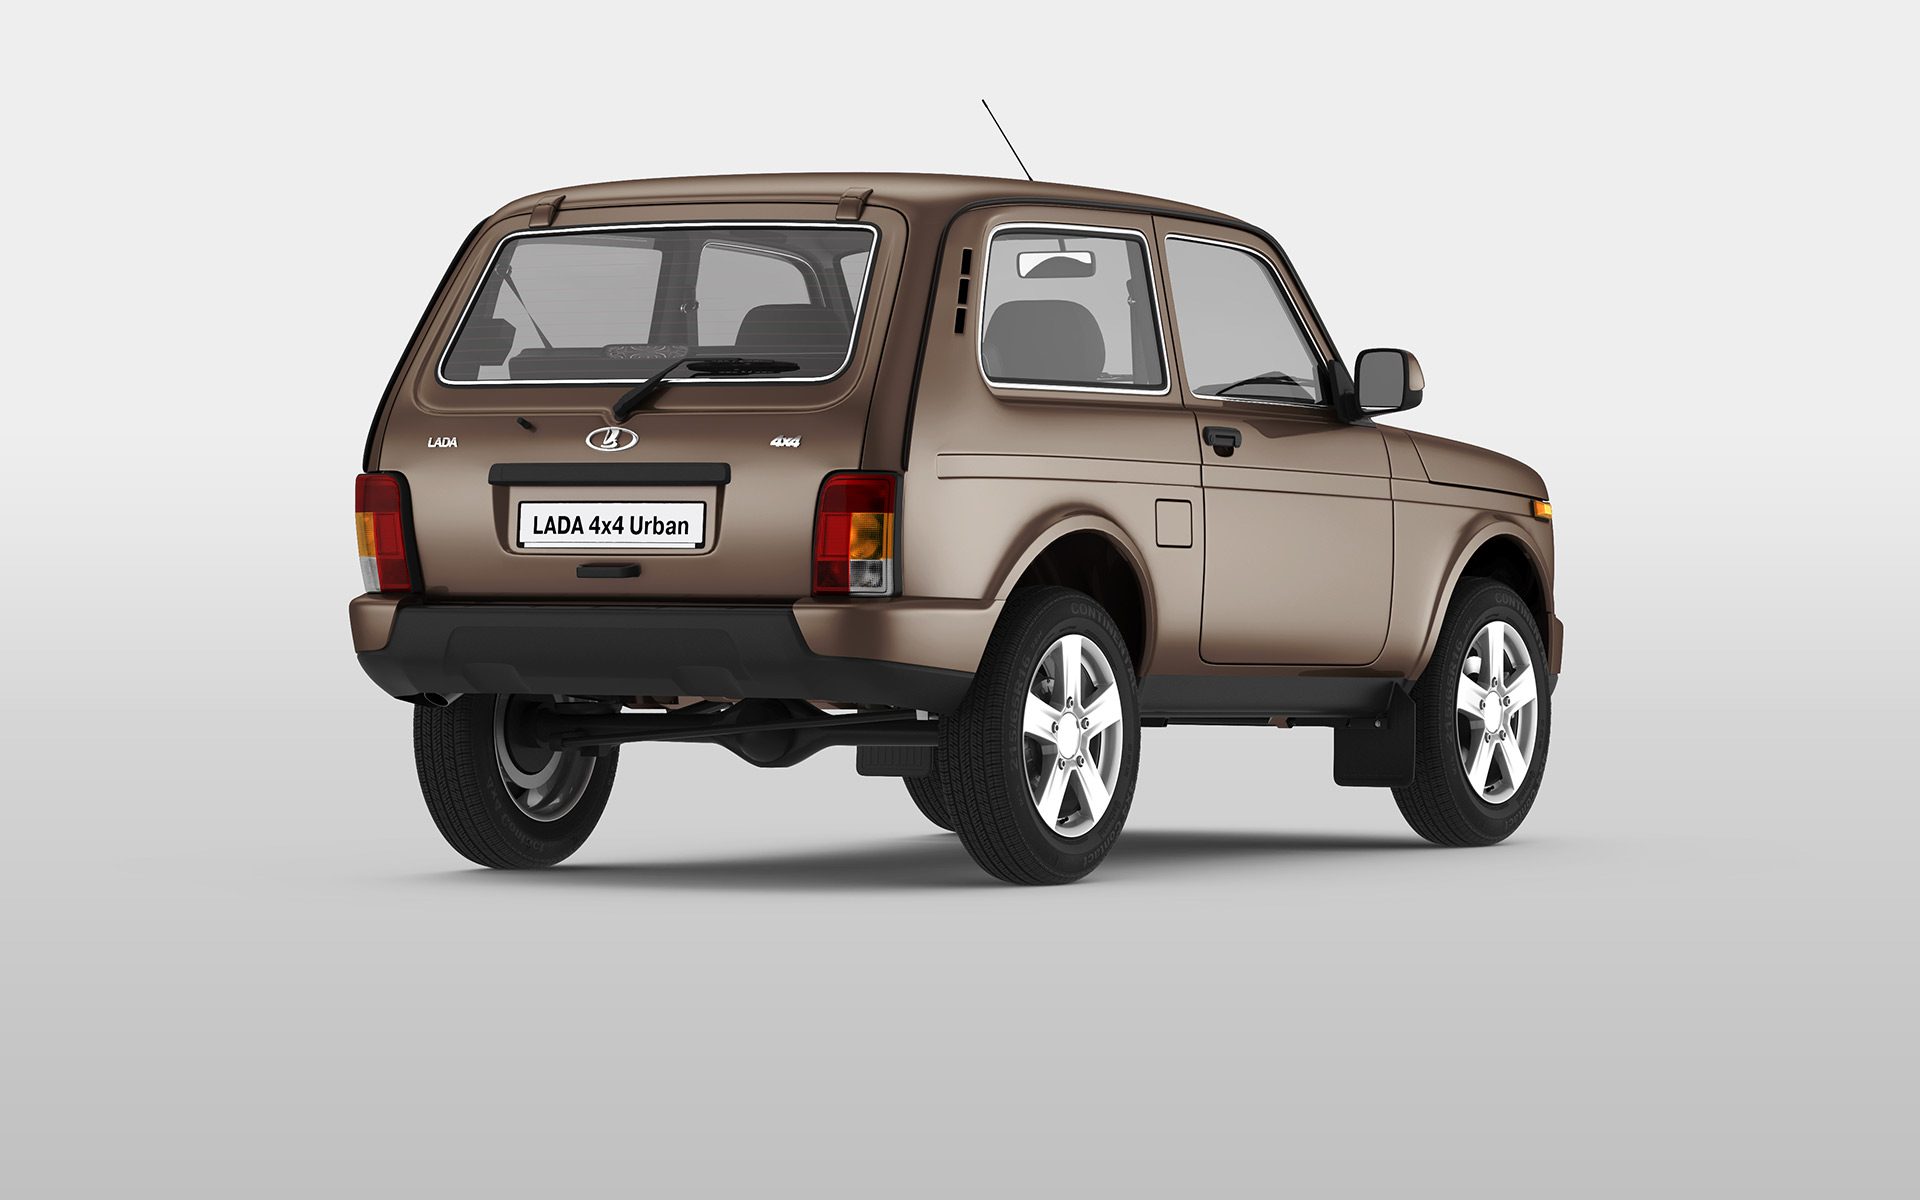 Lada 4x4 Urban Review Lada Official Website